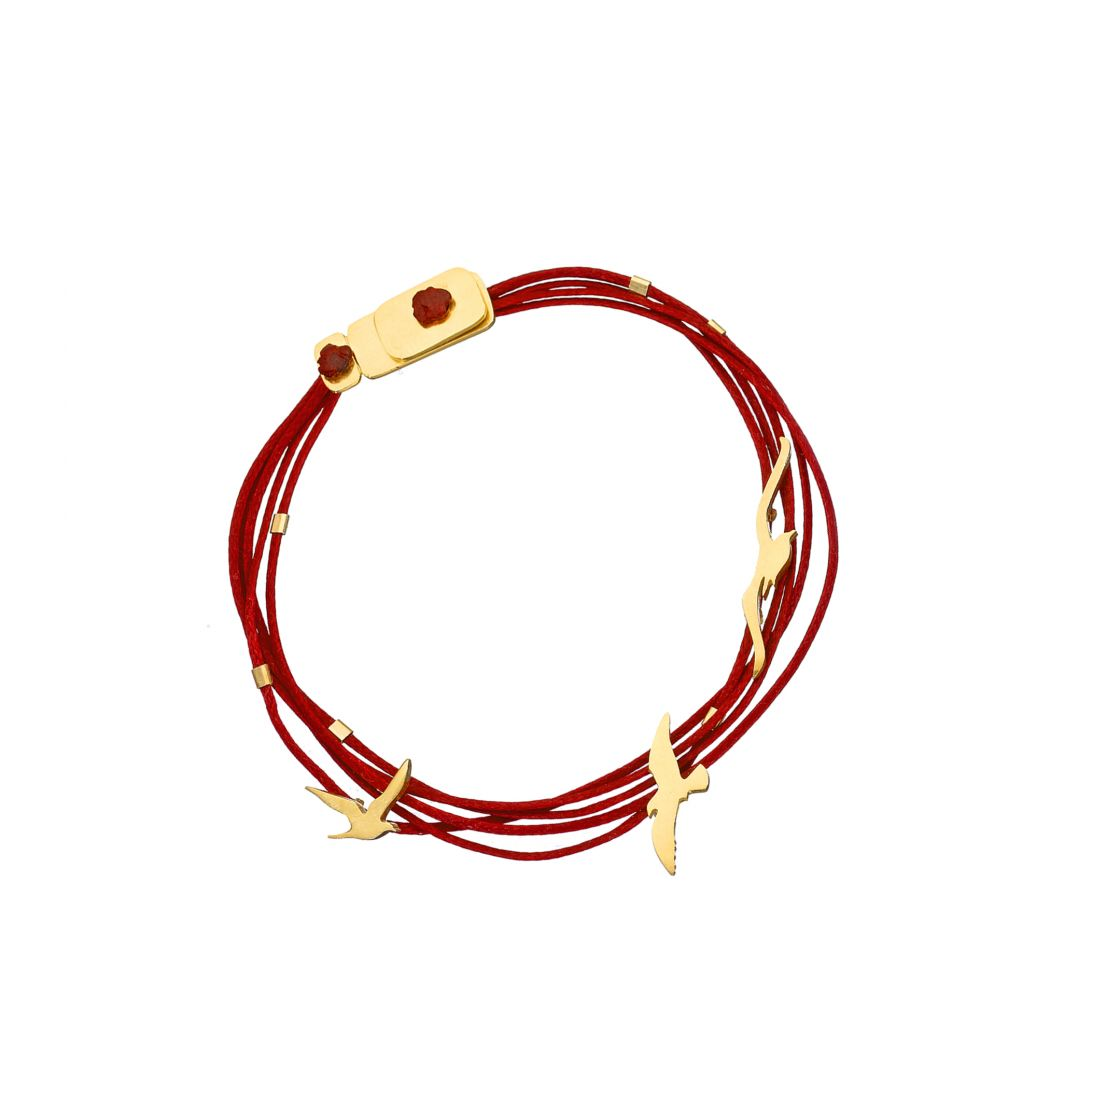 Gold seagulls tied to a multi strand of dark red cords